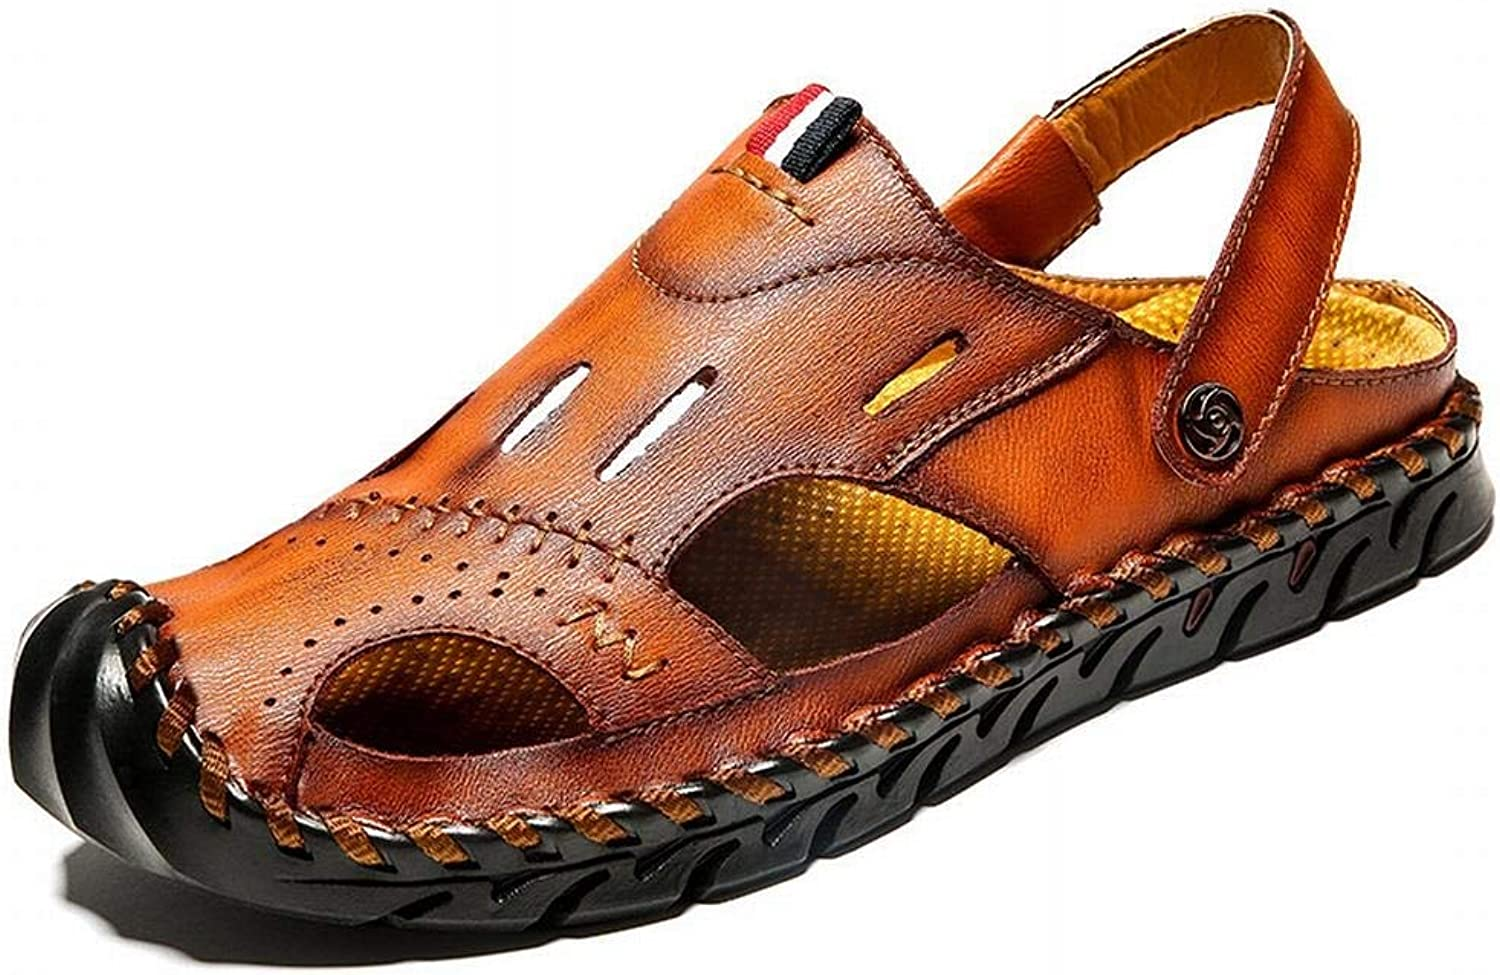 Easy Go Shopping Outdoor Casual shoes Leather Baotou Sets Of Feet Sandals And Slippers Sandals Men's shoes Cricket shoes (color   Red brown, Size   41)